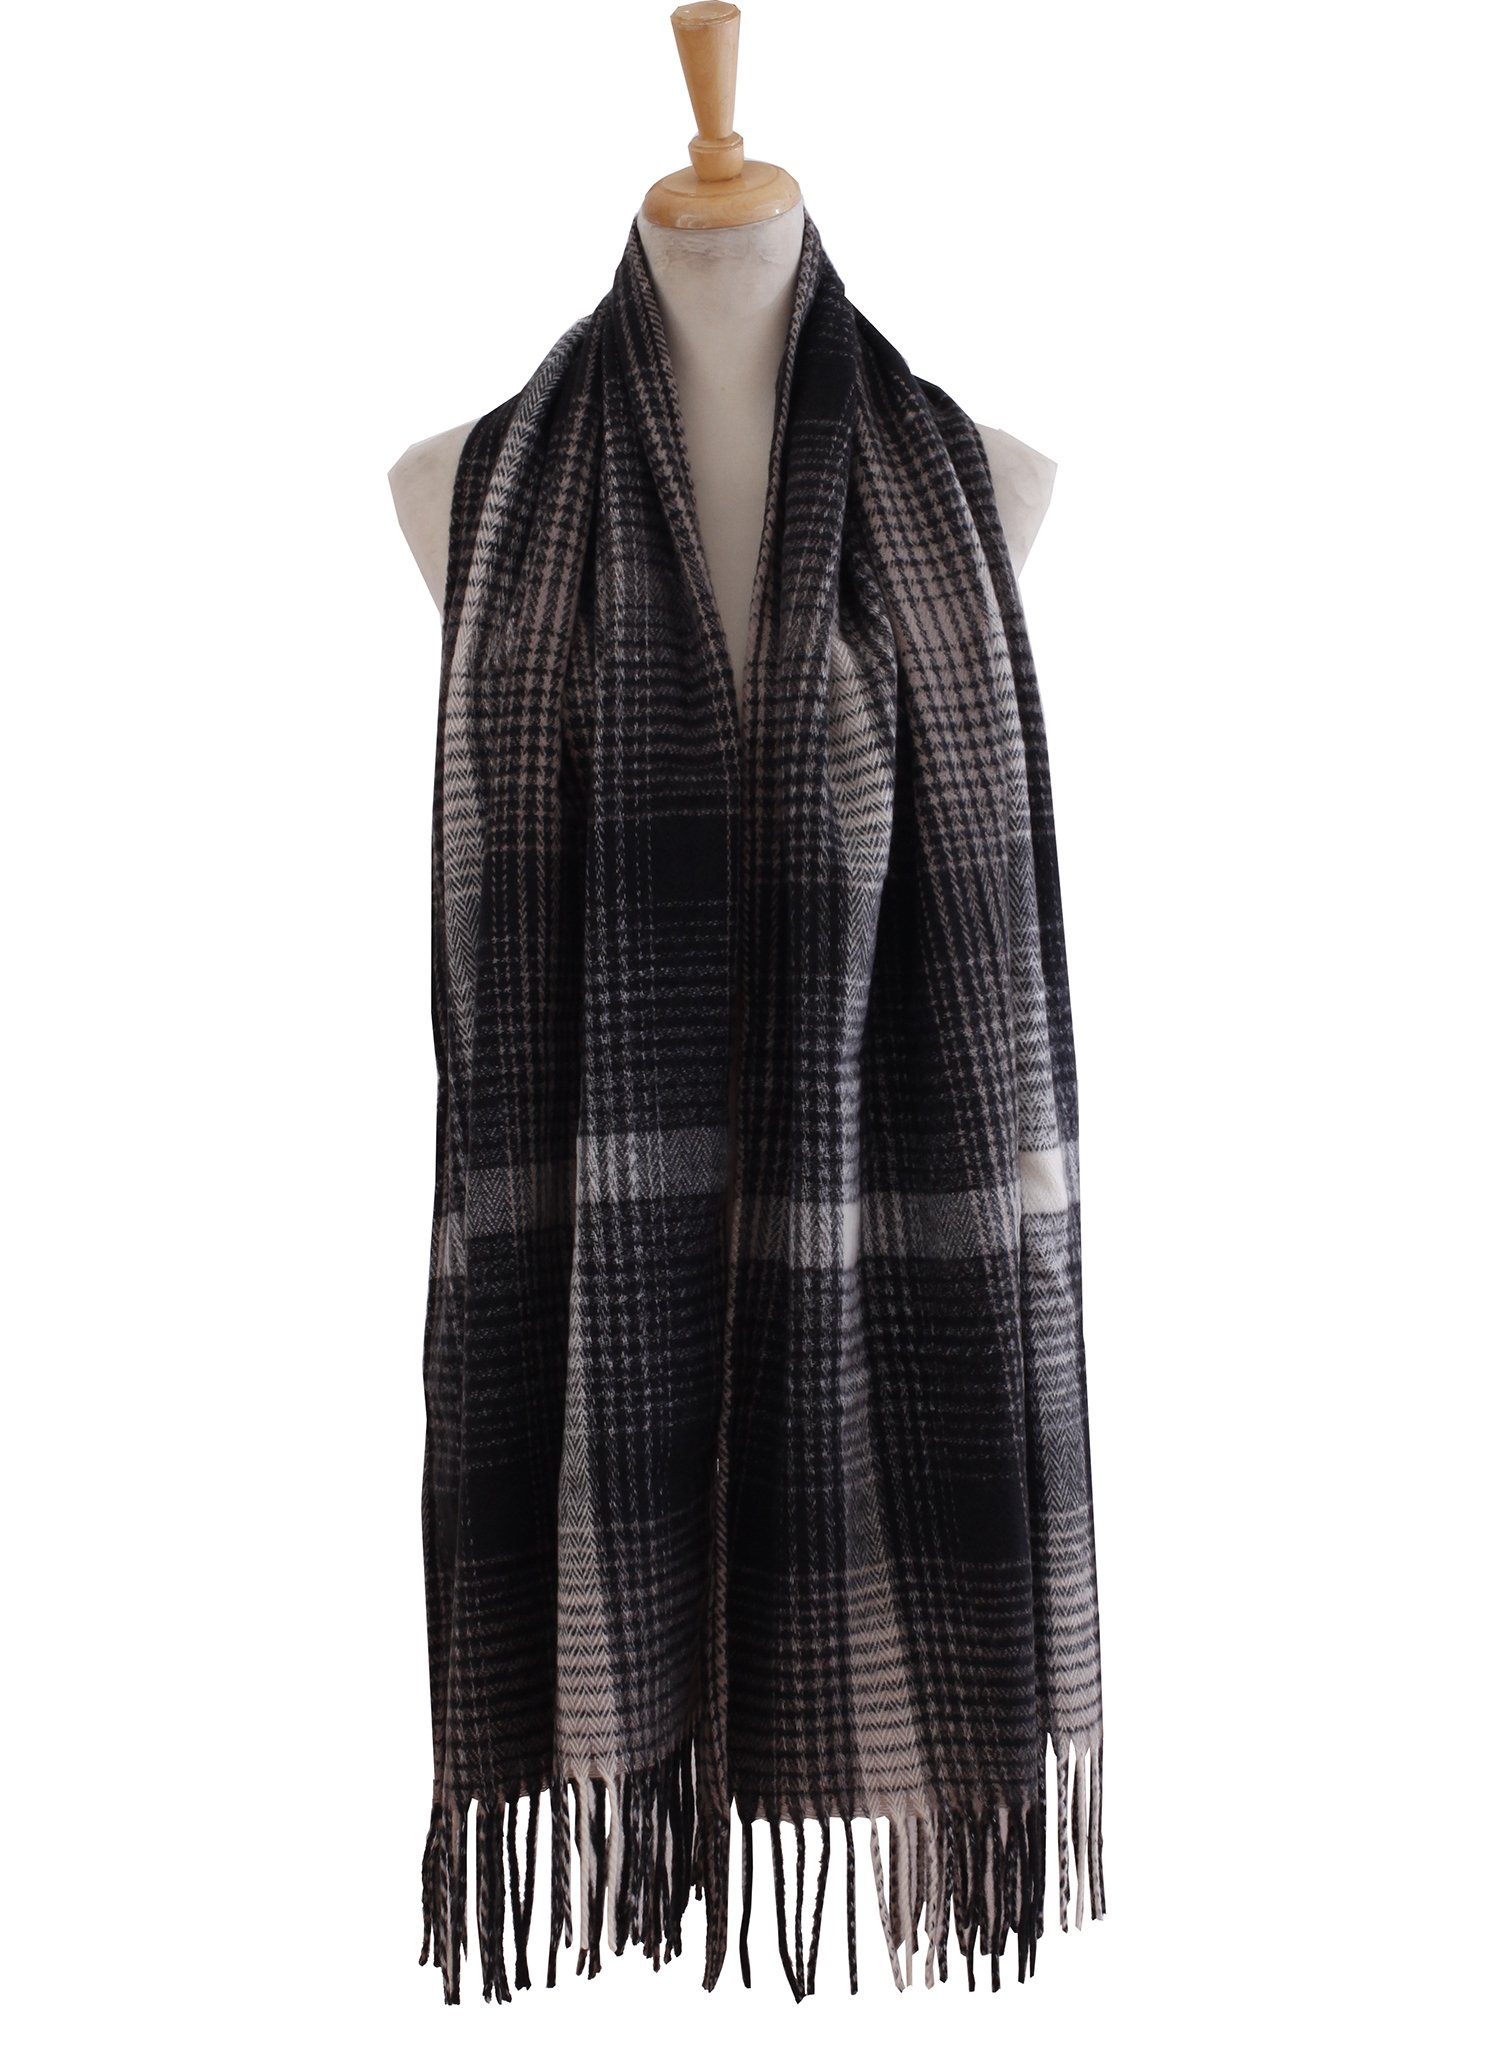 Checkered Scarf Muffler Chunky Warm Classic For Cold Weather Girls (Black)